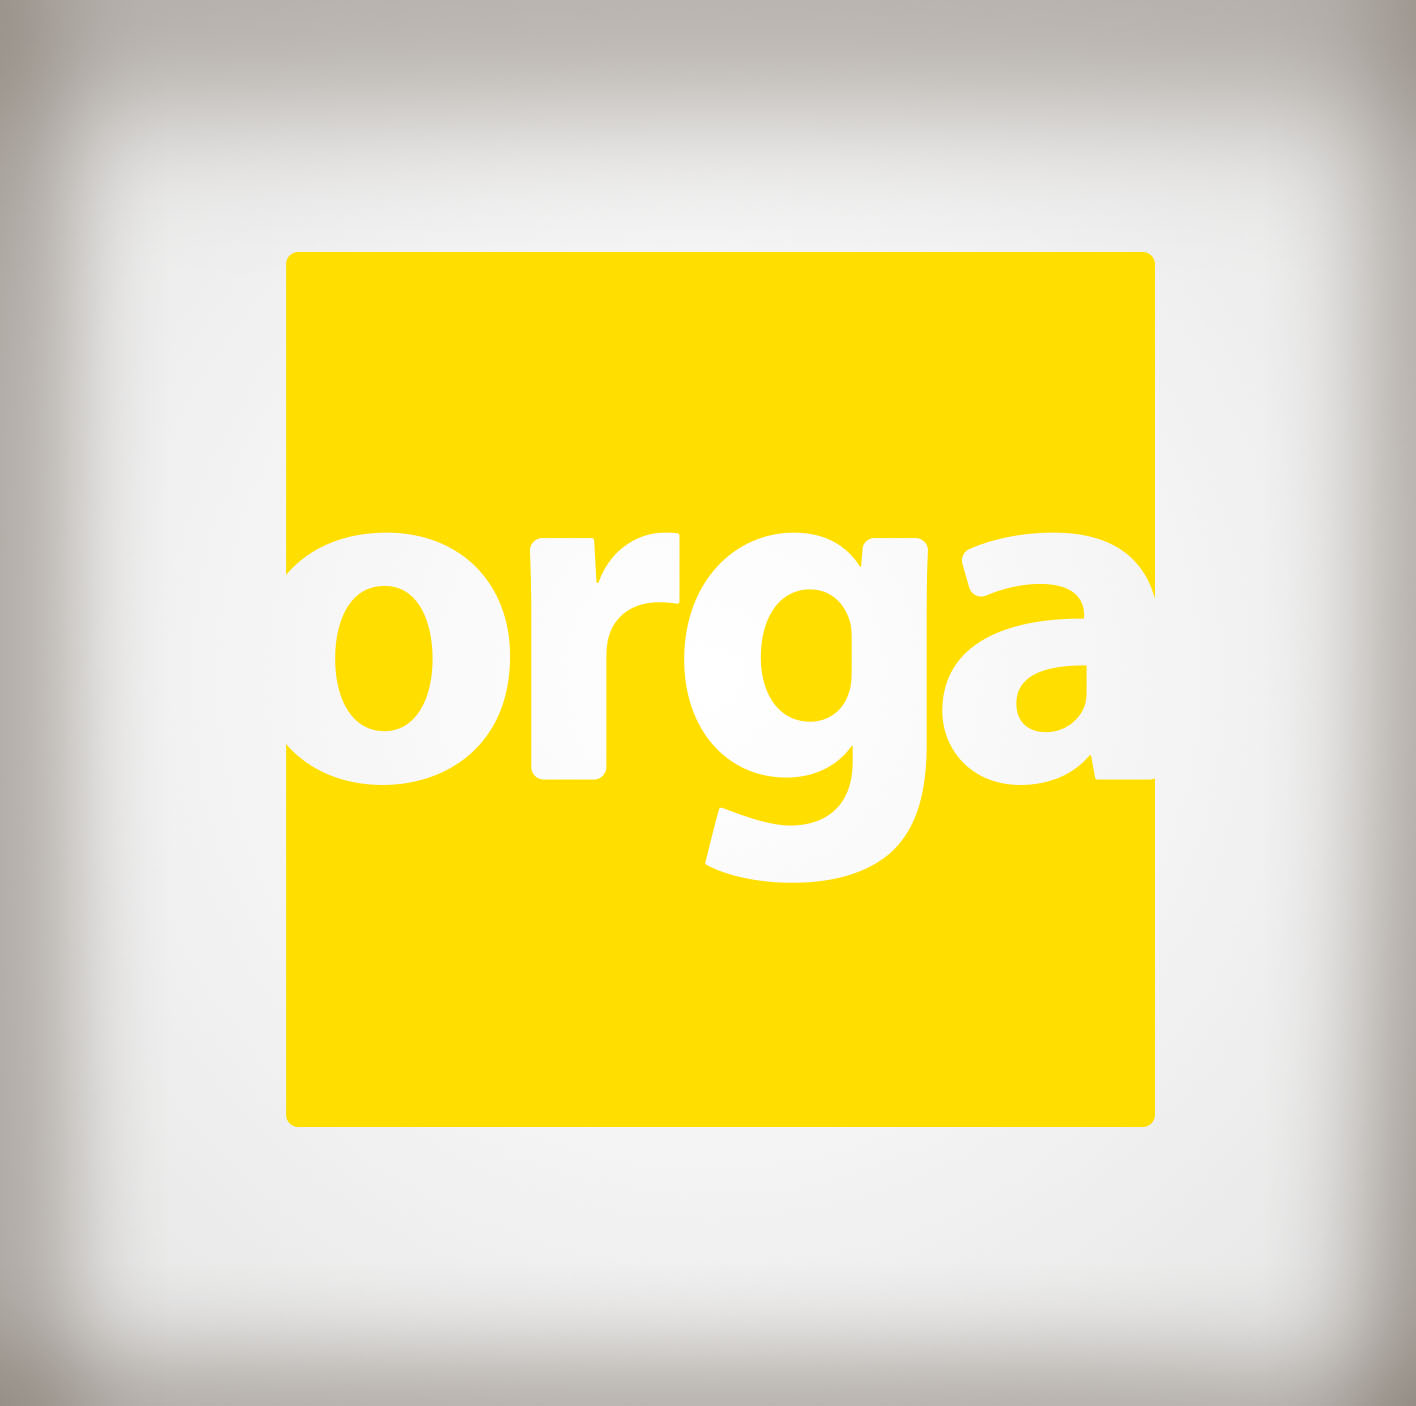 News website release | Orga